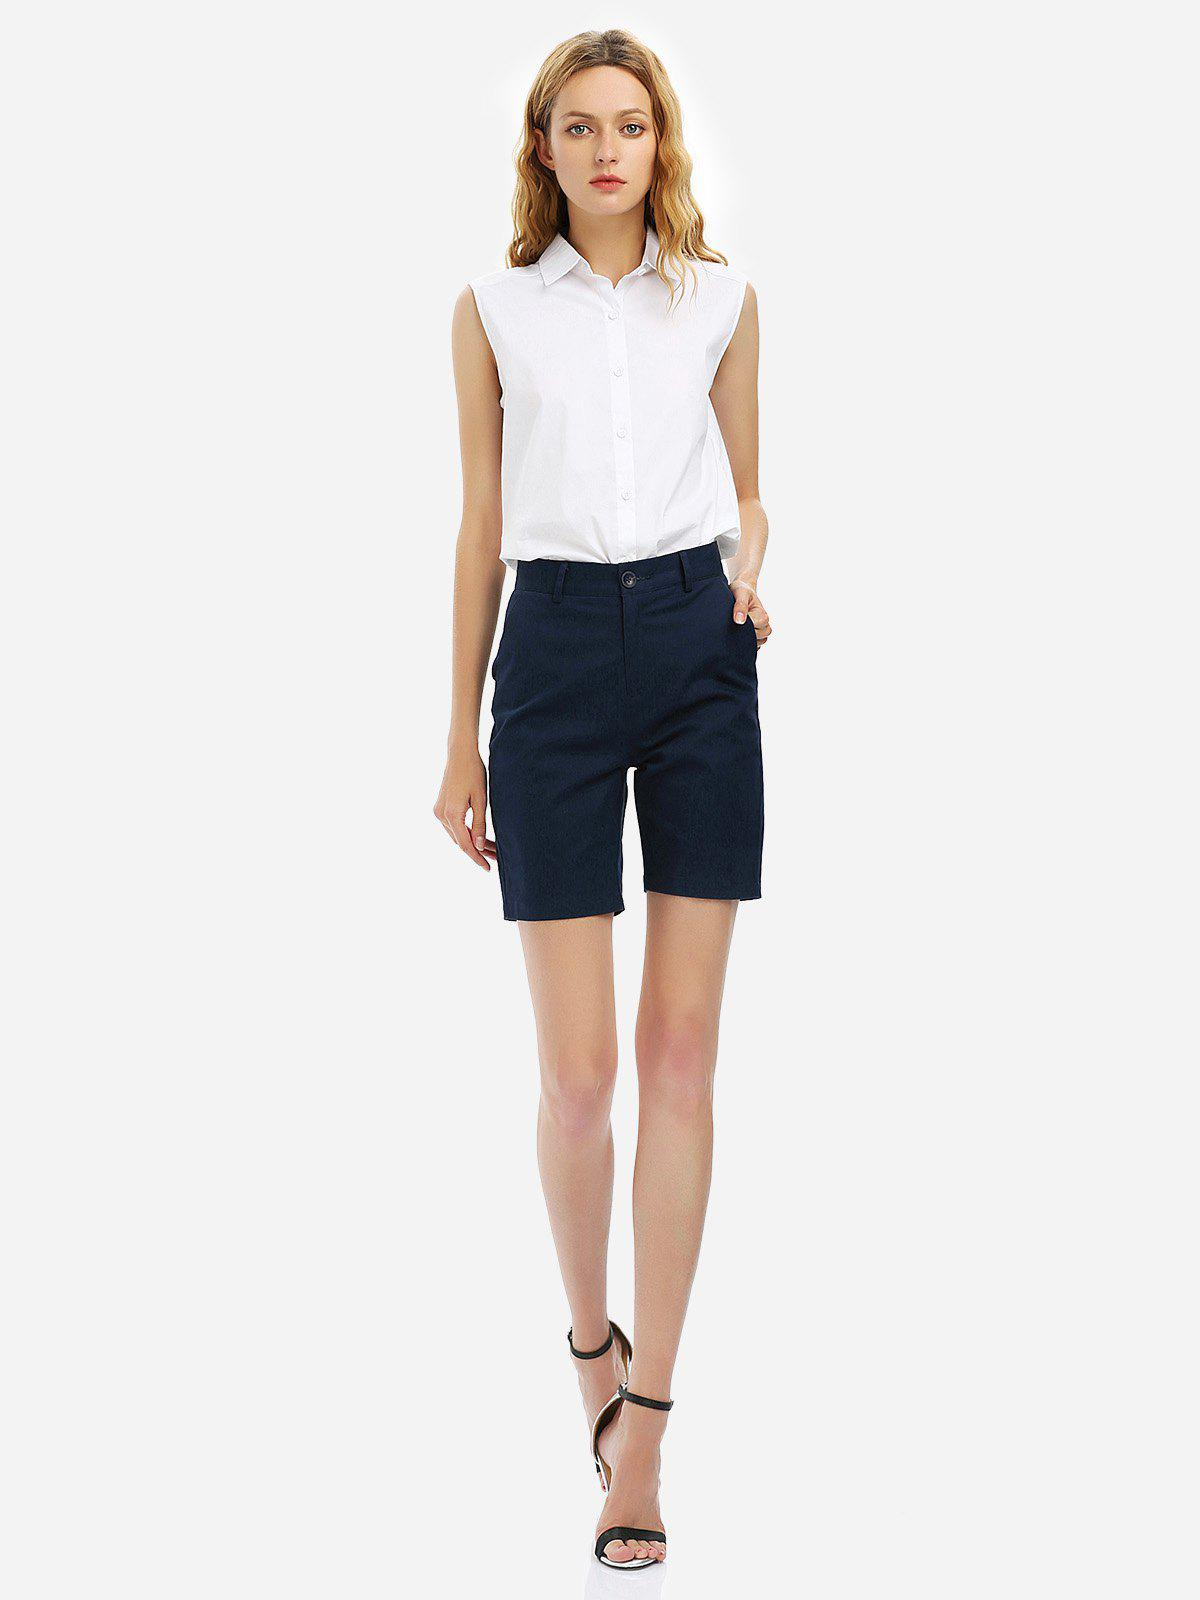 ZAN.STYLE Cuffed Shorts - PURPLISH BLUE L